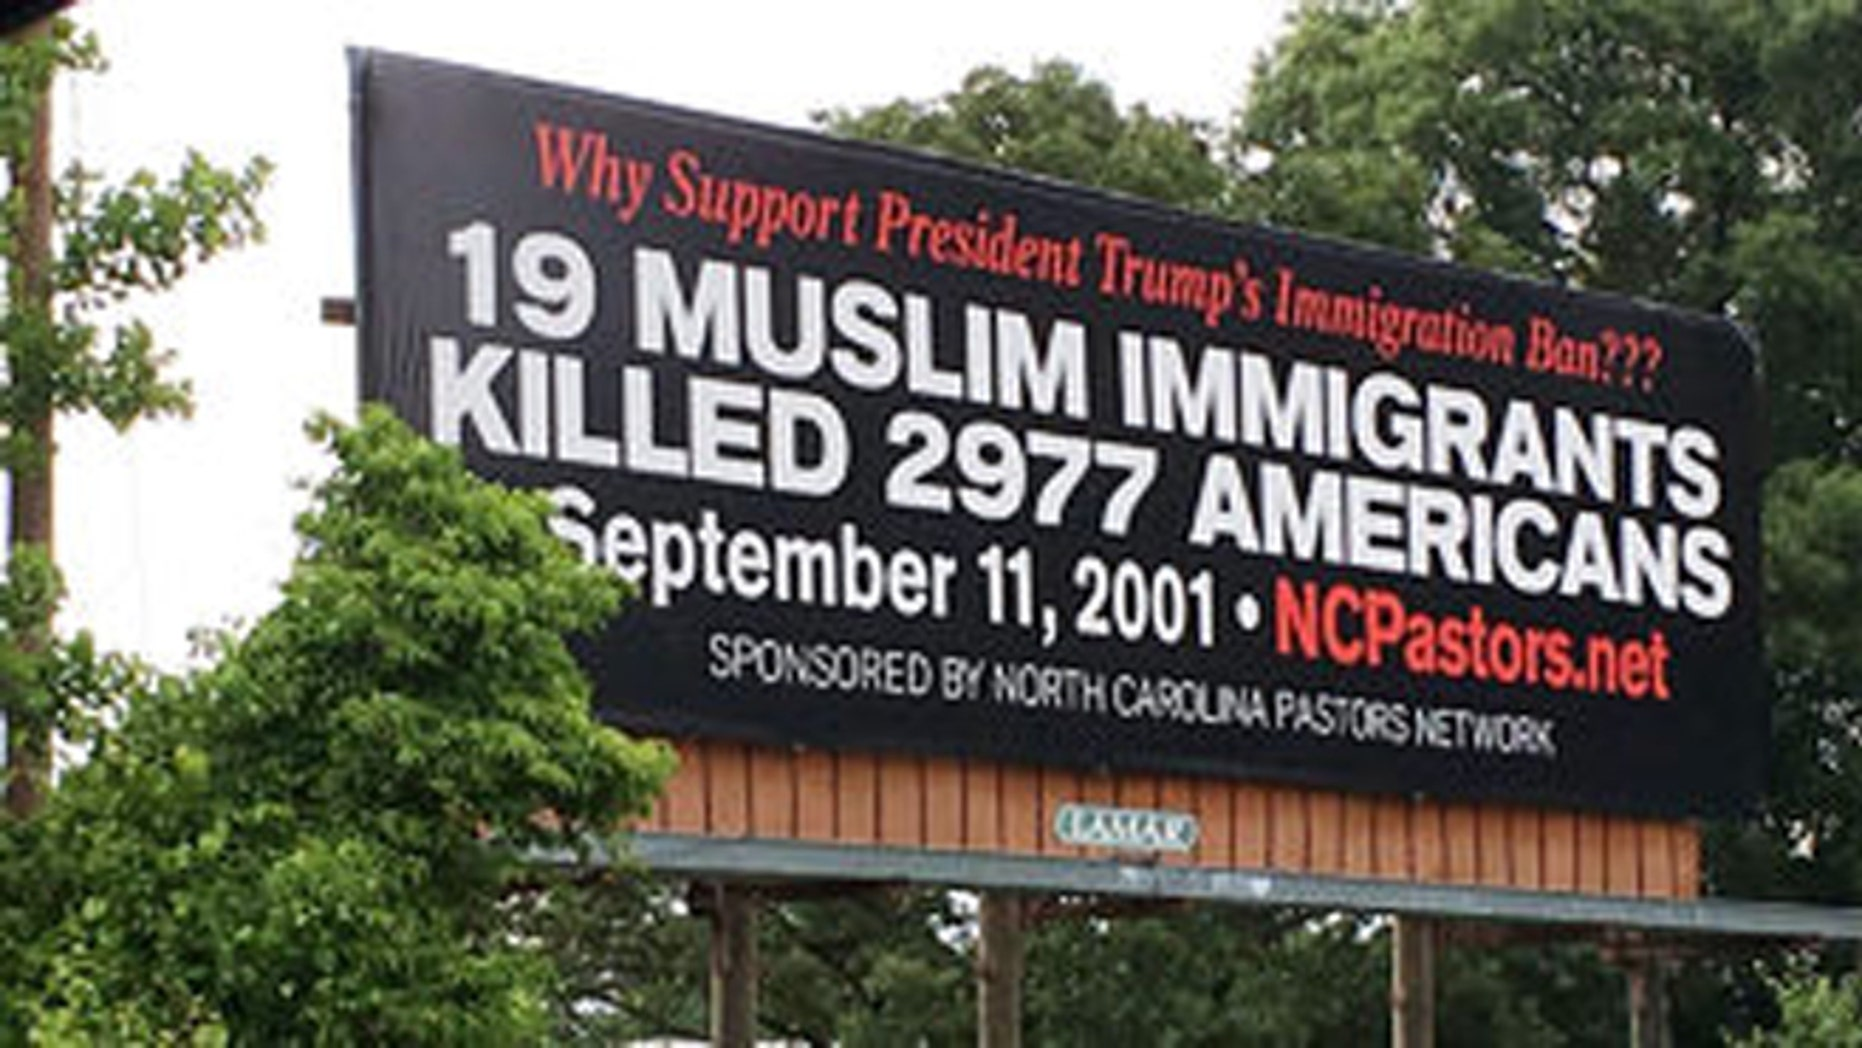 This billboard greets motorists on Interstate 40 in North Carolina's Catawba County.